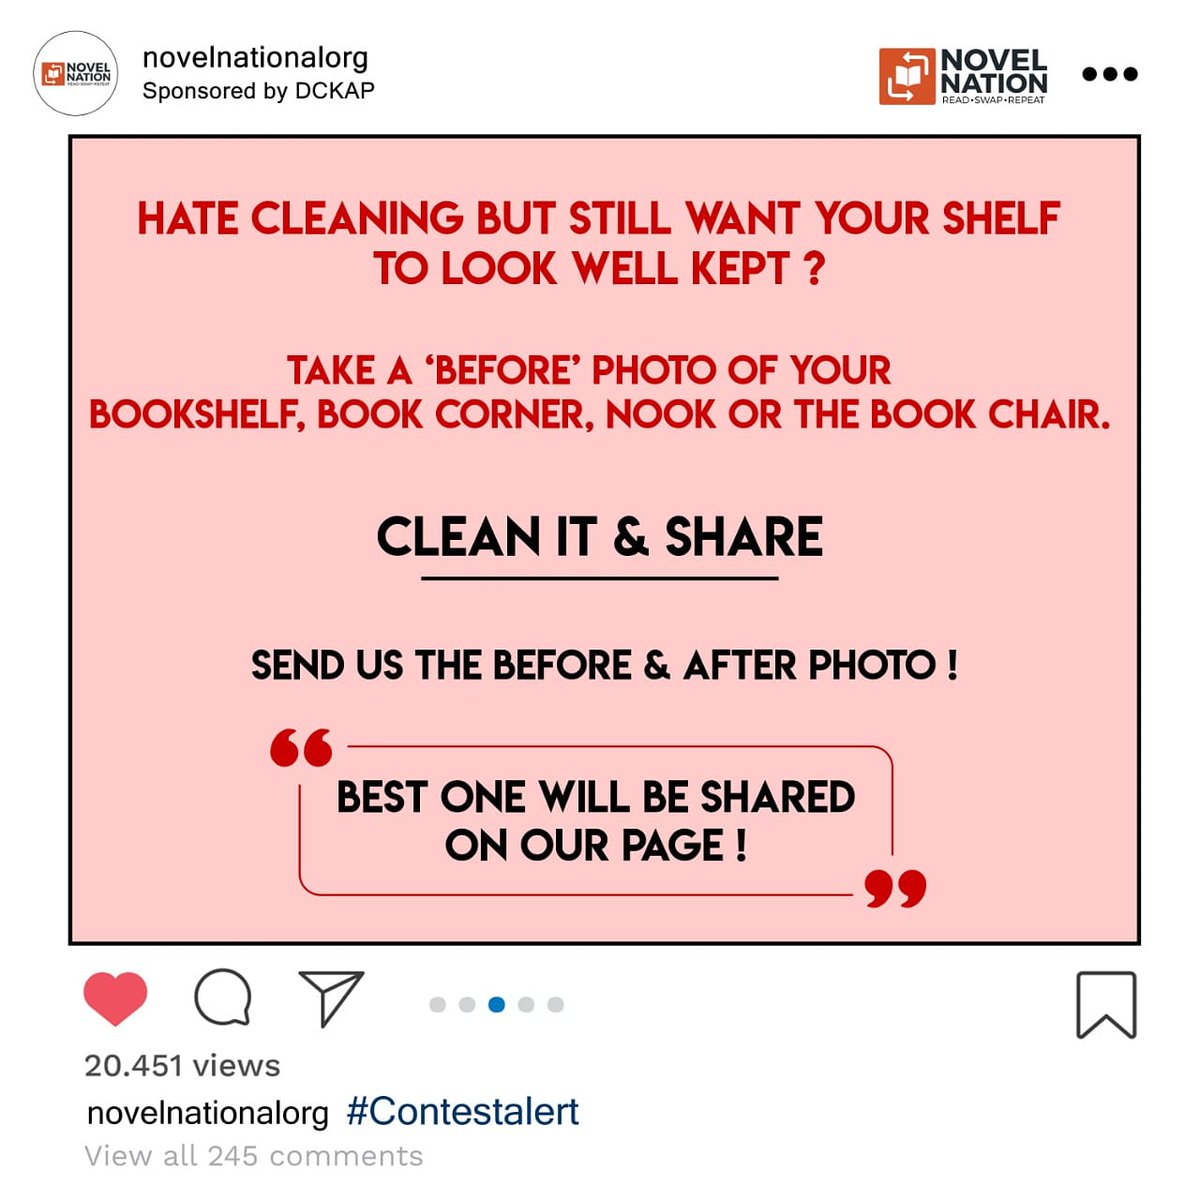 #Contestalert  Share a picture of your library/reading corner with us! Calling all the #booklovers to clean their shelves and share pictures with us! #BooksConnectUs #StayHomeStaySafe #library #Contest #pictures #books #BookShelf #LibraryfromHome #readerspic.twitter.com/KExBRxgRhZ